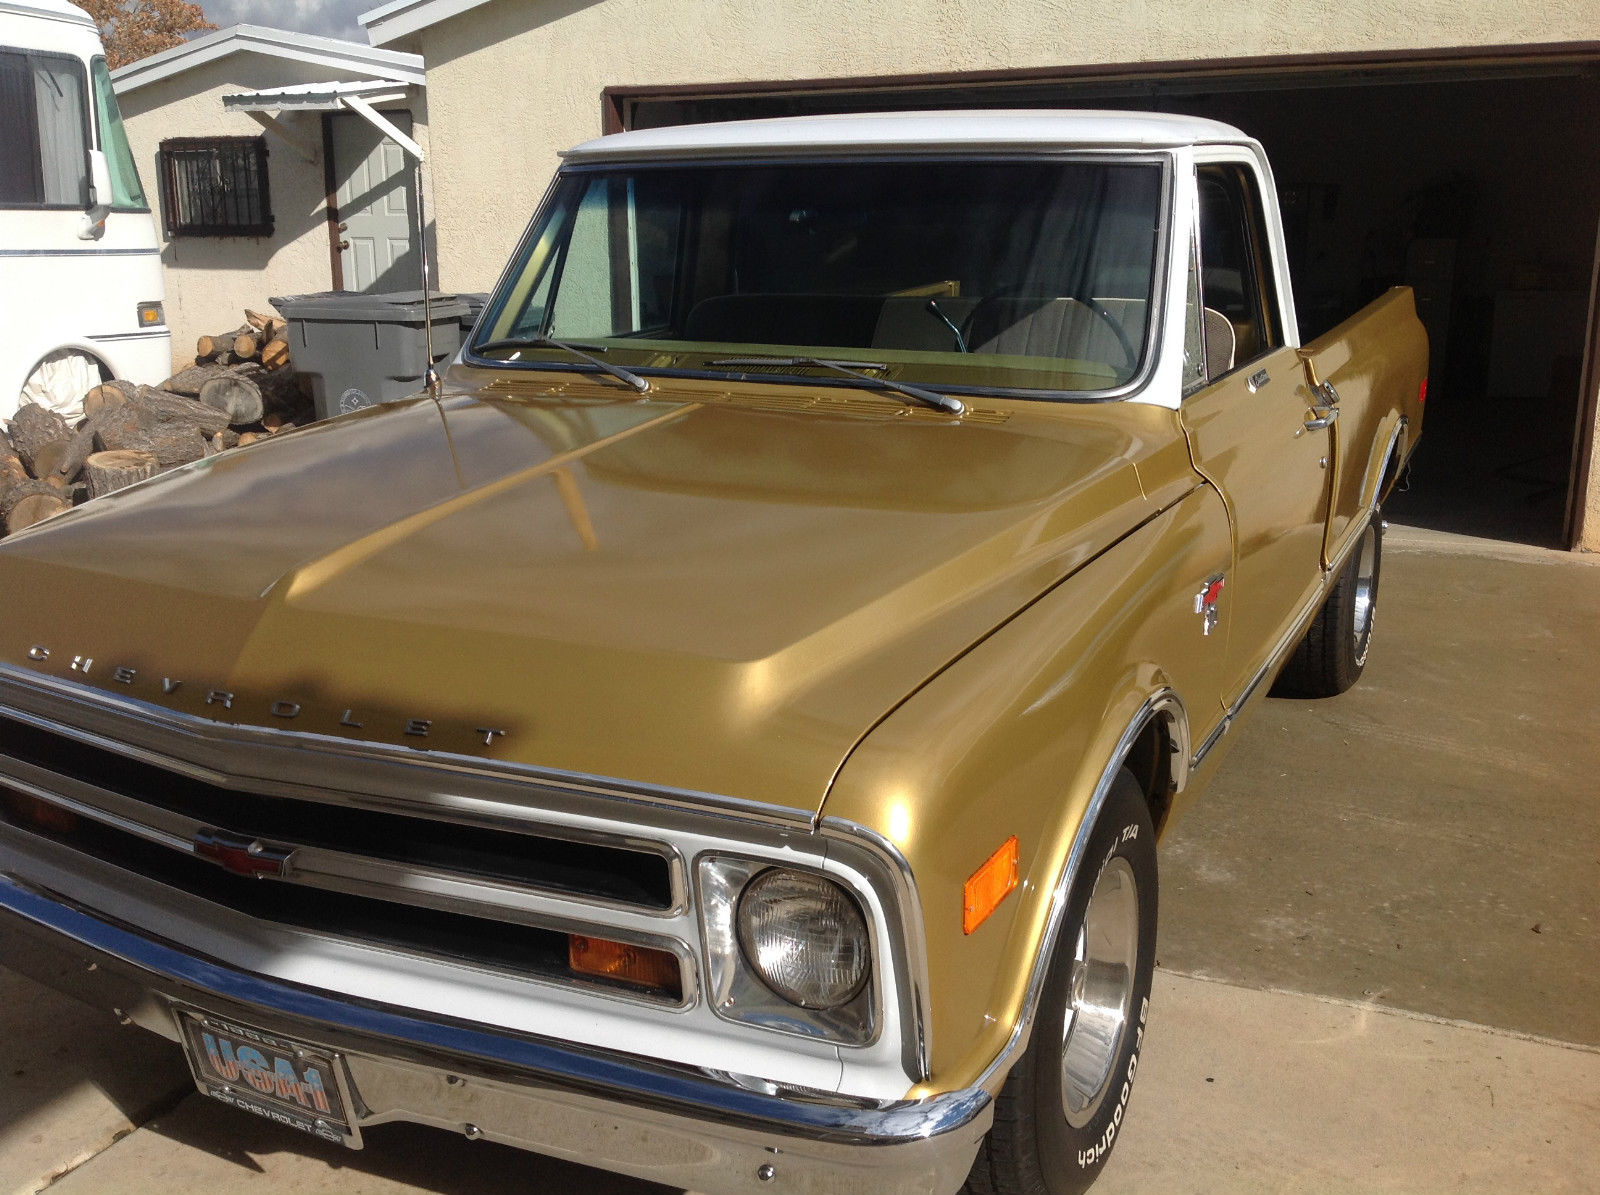 1968 Chevrolet C10 Anniversary Gold Edition Shortbed